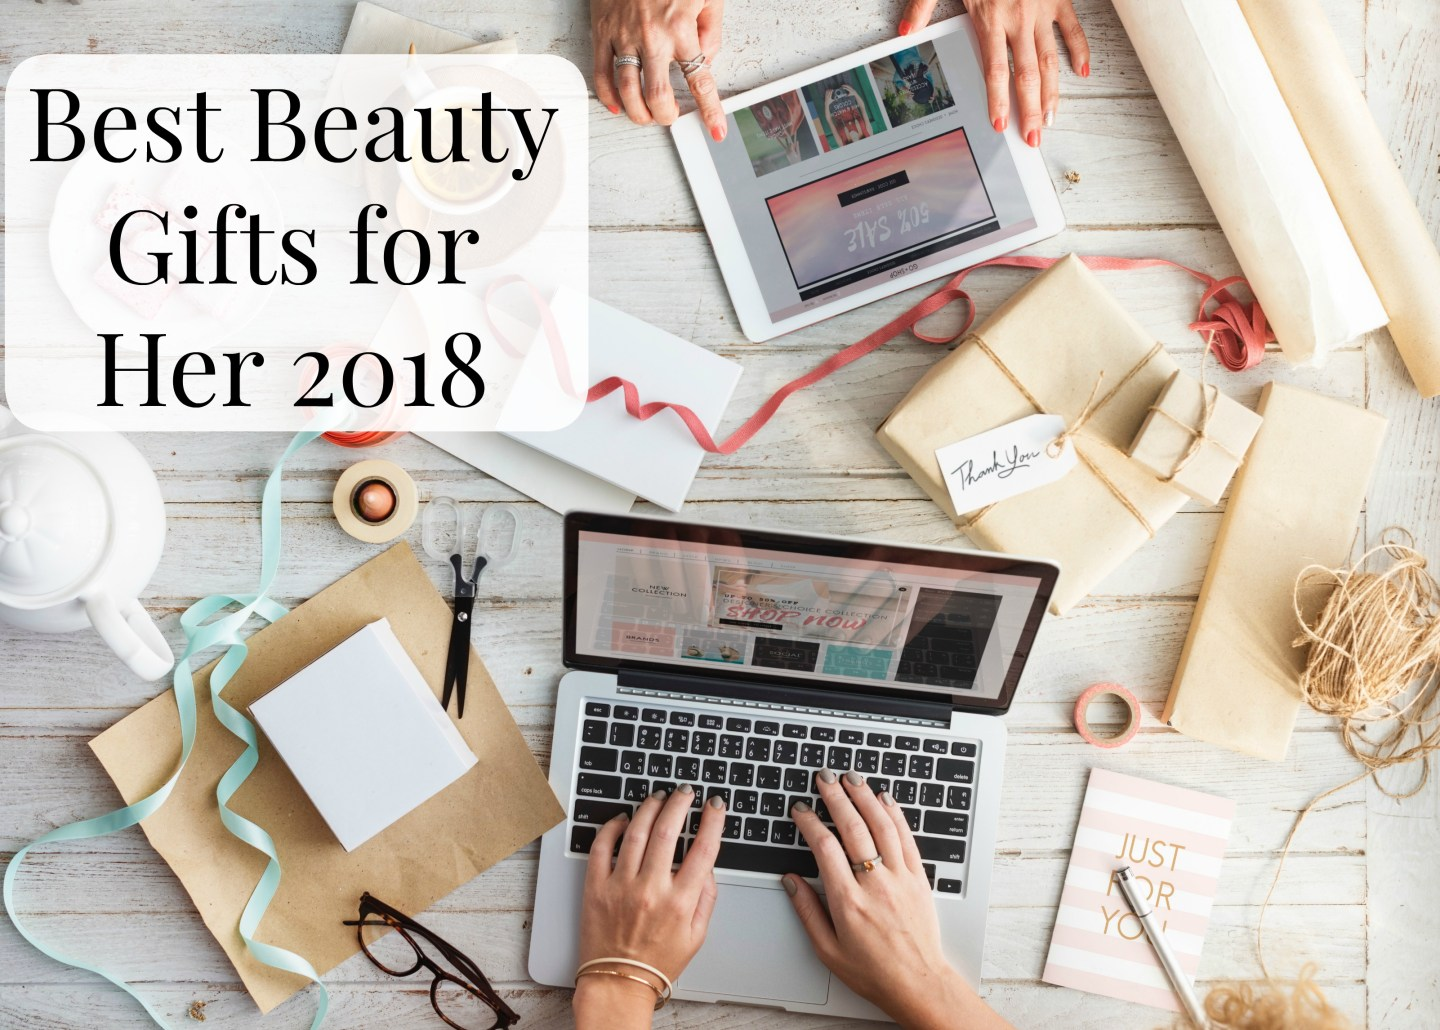 ec923f224031 Best Beauty Gifts for Her 2018 - She Might Be Loved